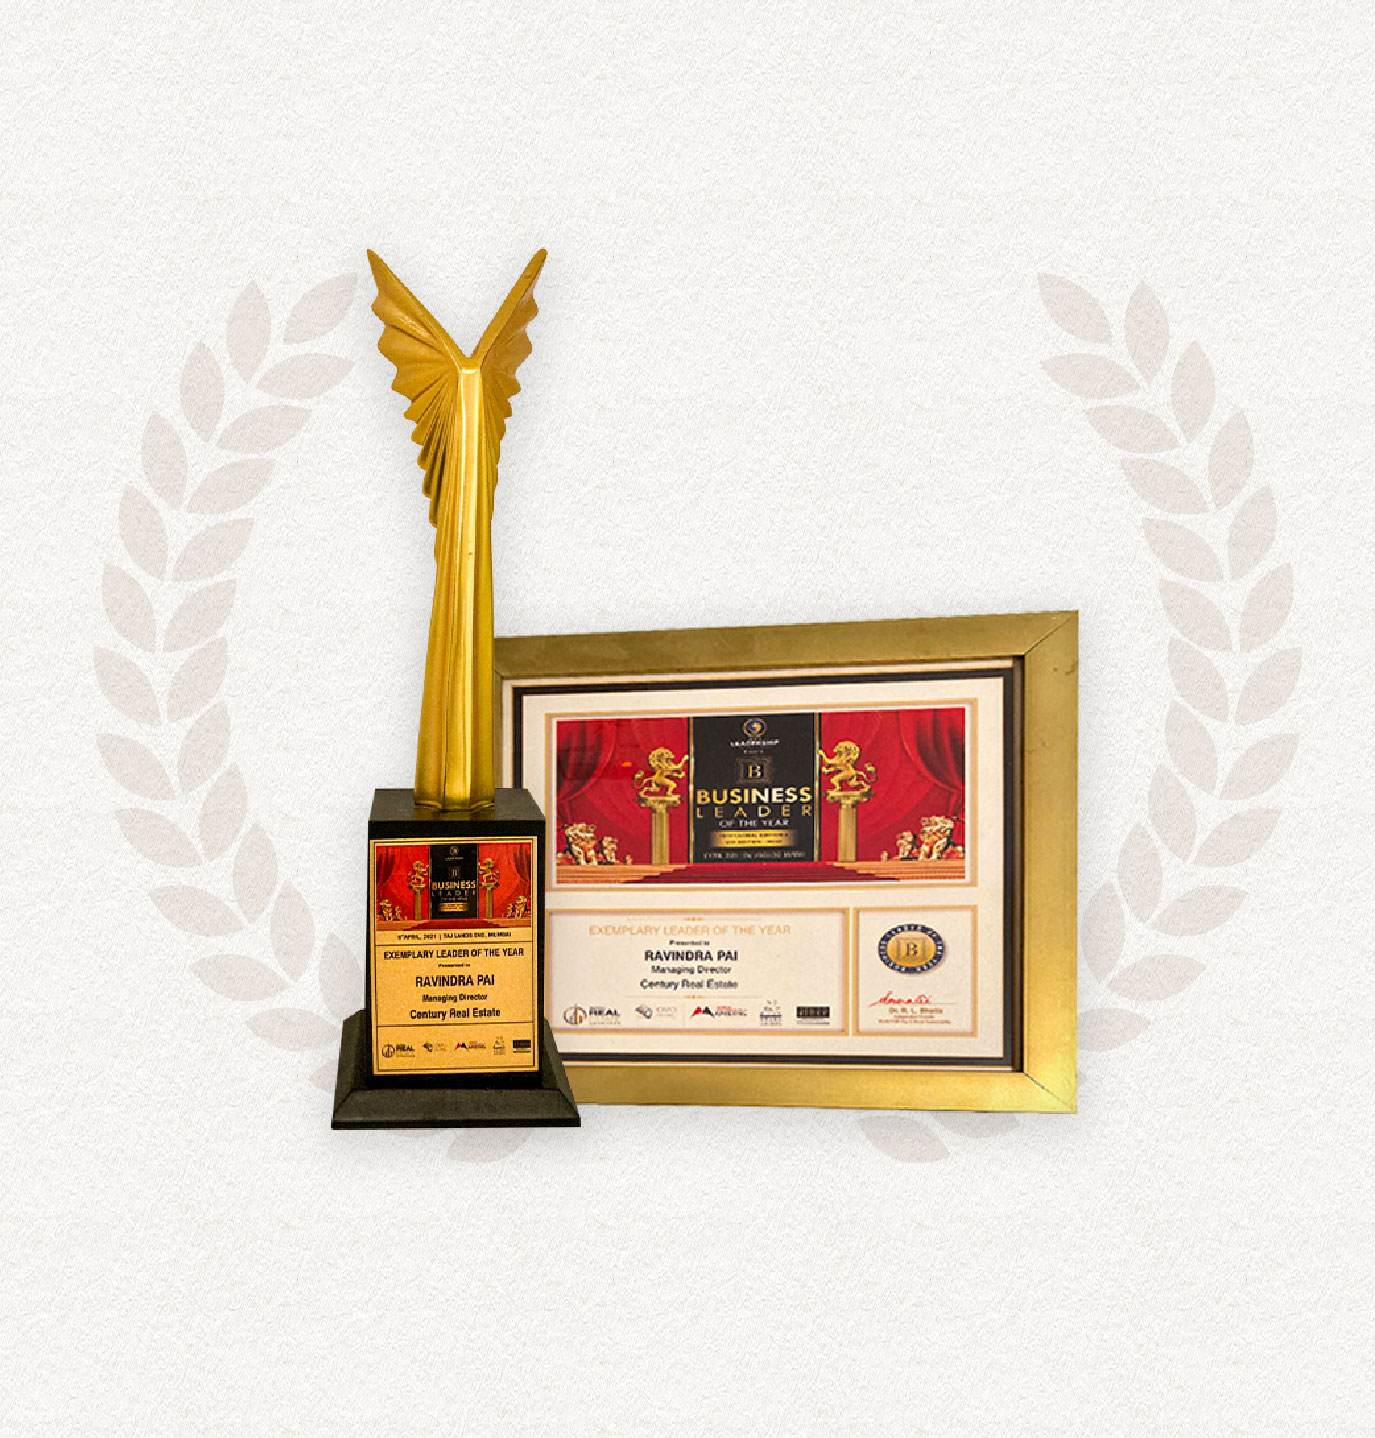 P. RAVINDRA PAI, MANAGING DIRECTOR, WINS EXEMPLARY LEADER OF THE YEAR - 2021